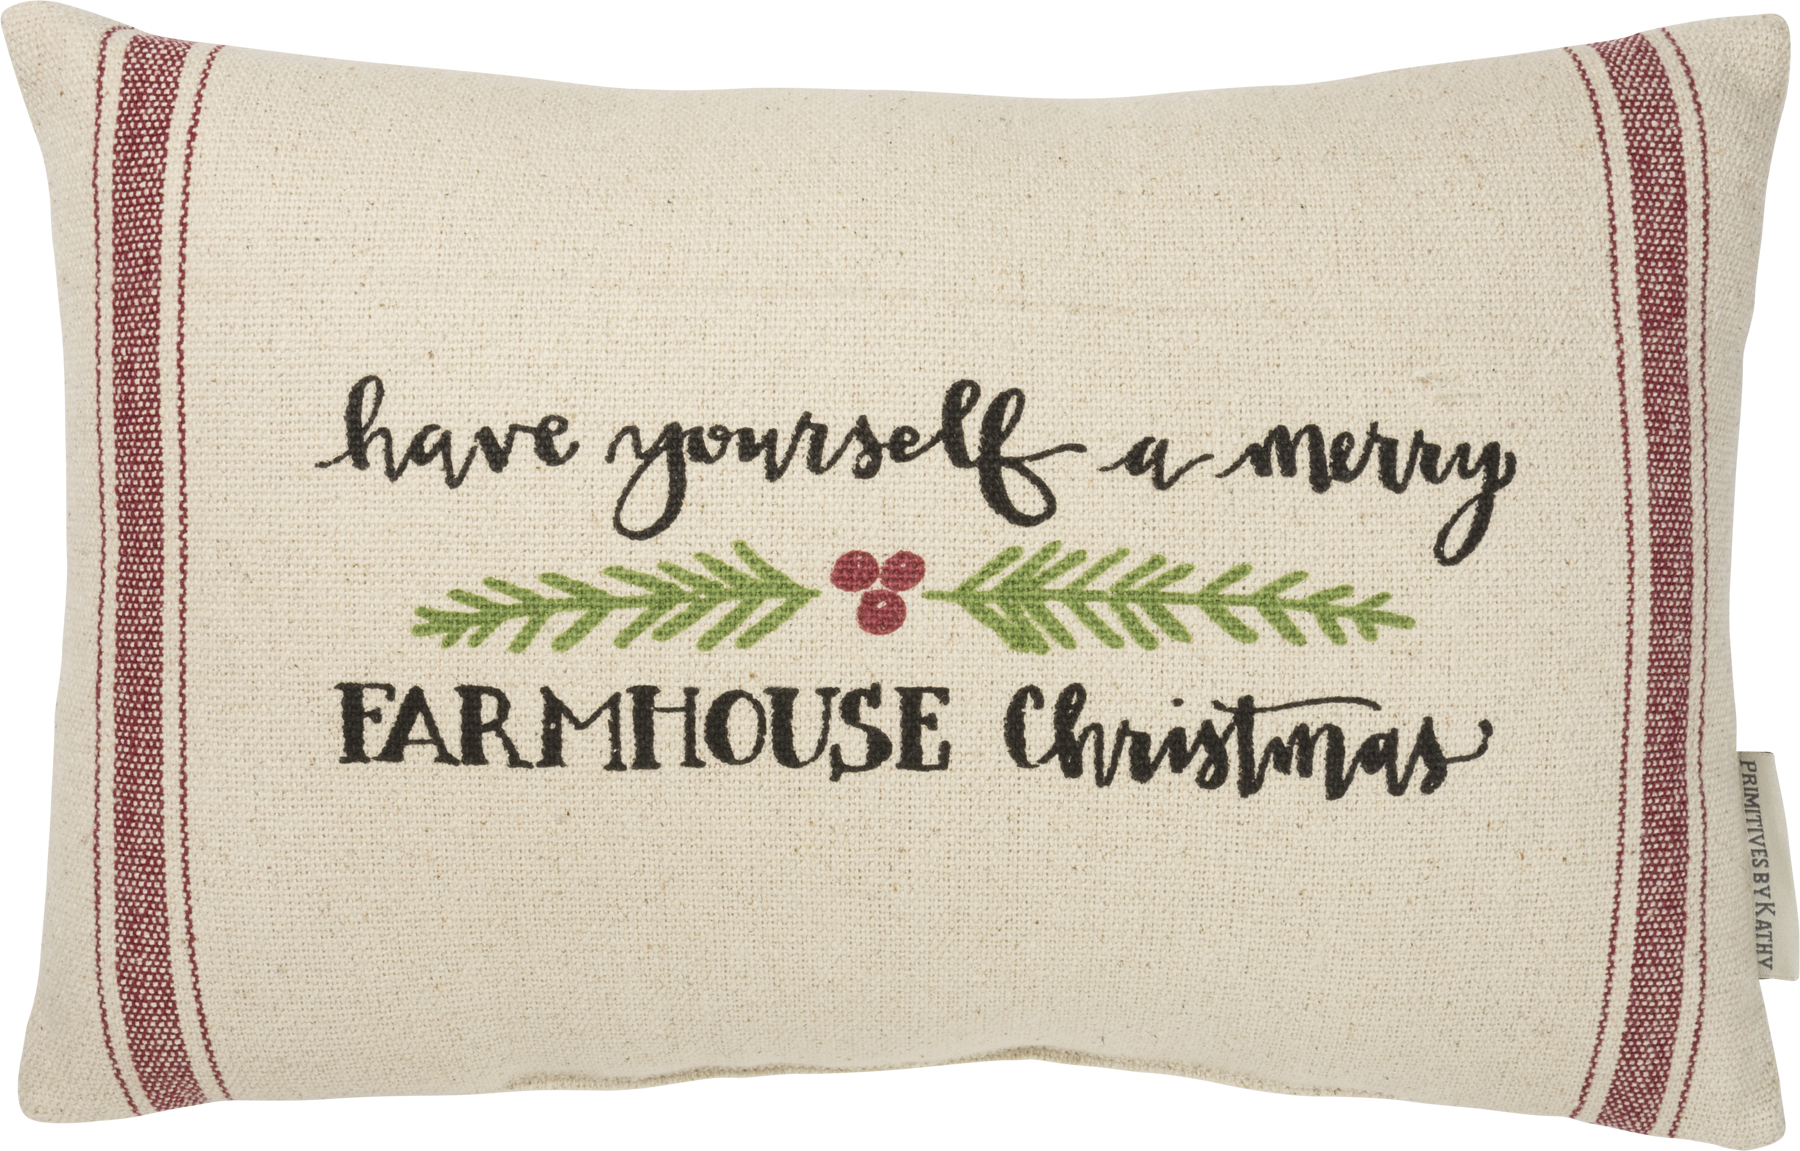 Have Yourself A Merry Farmhouse Christmas Decorative Cotton Throw Pillow 15x10 From Primitives By Kathy